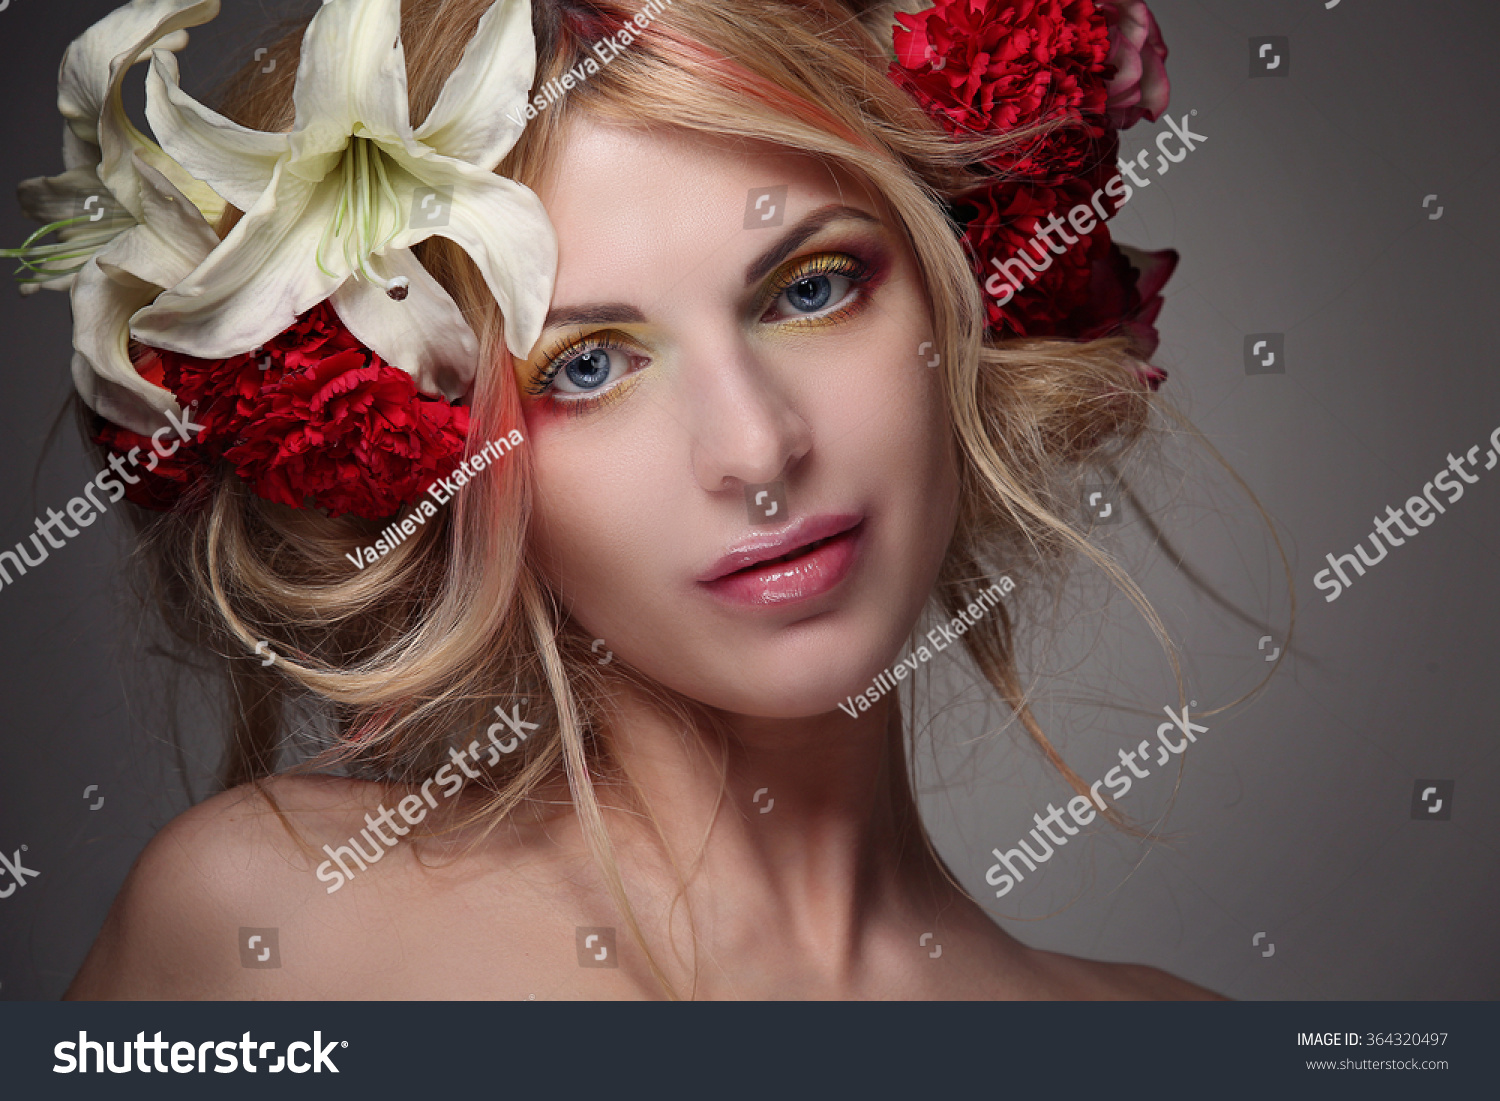 Portrait girl model beautiful hair flowers stock photo edit now portrait of a girl model with beautiful hair and flowers in her hair fashion izmirmasajfo